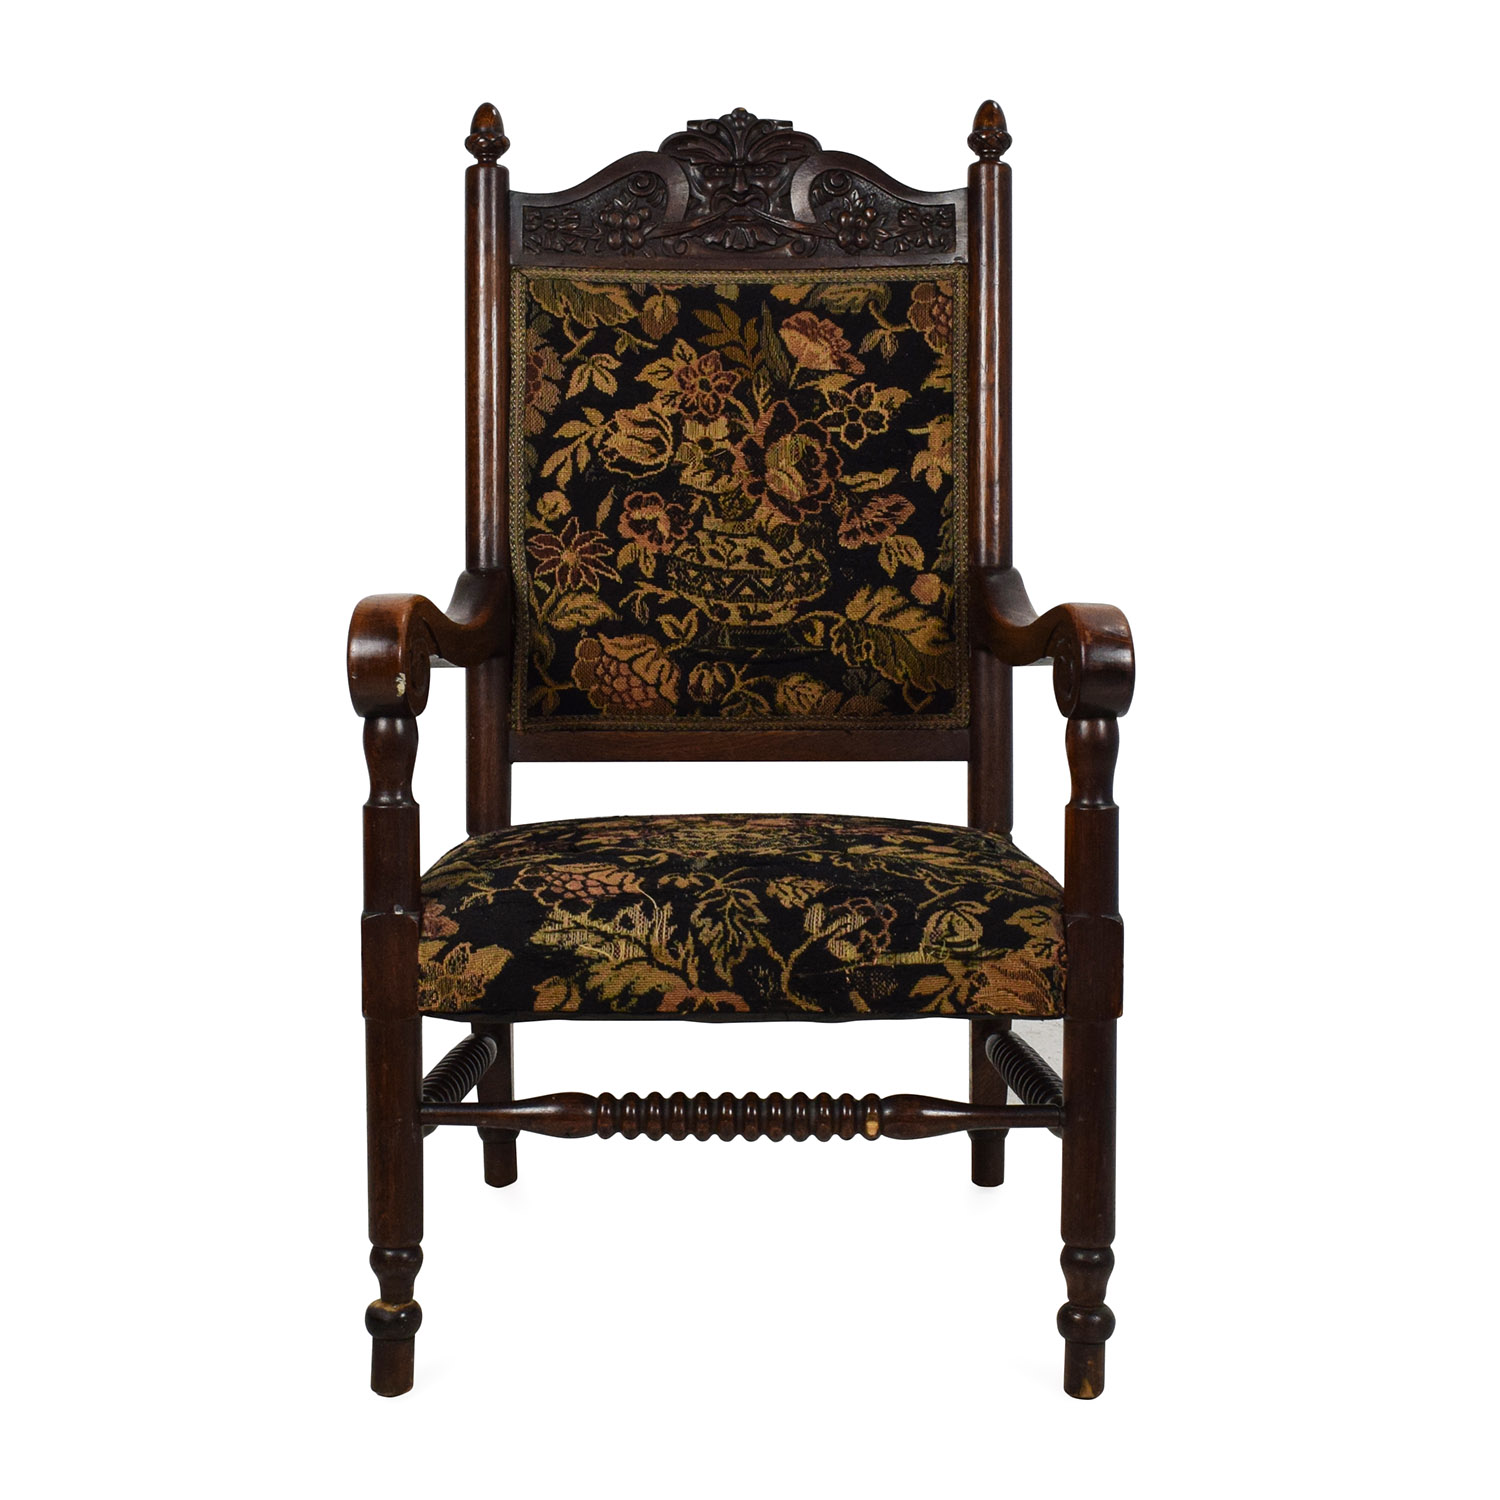 Antique Accent Chairs 84 Off Antique Tudor Upholstered Chair Chairs